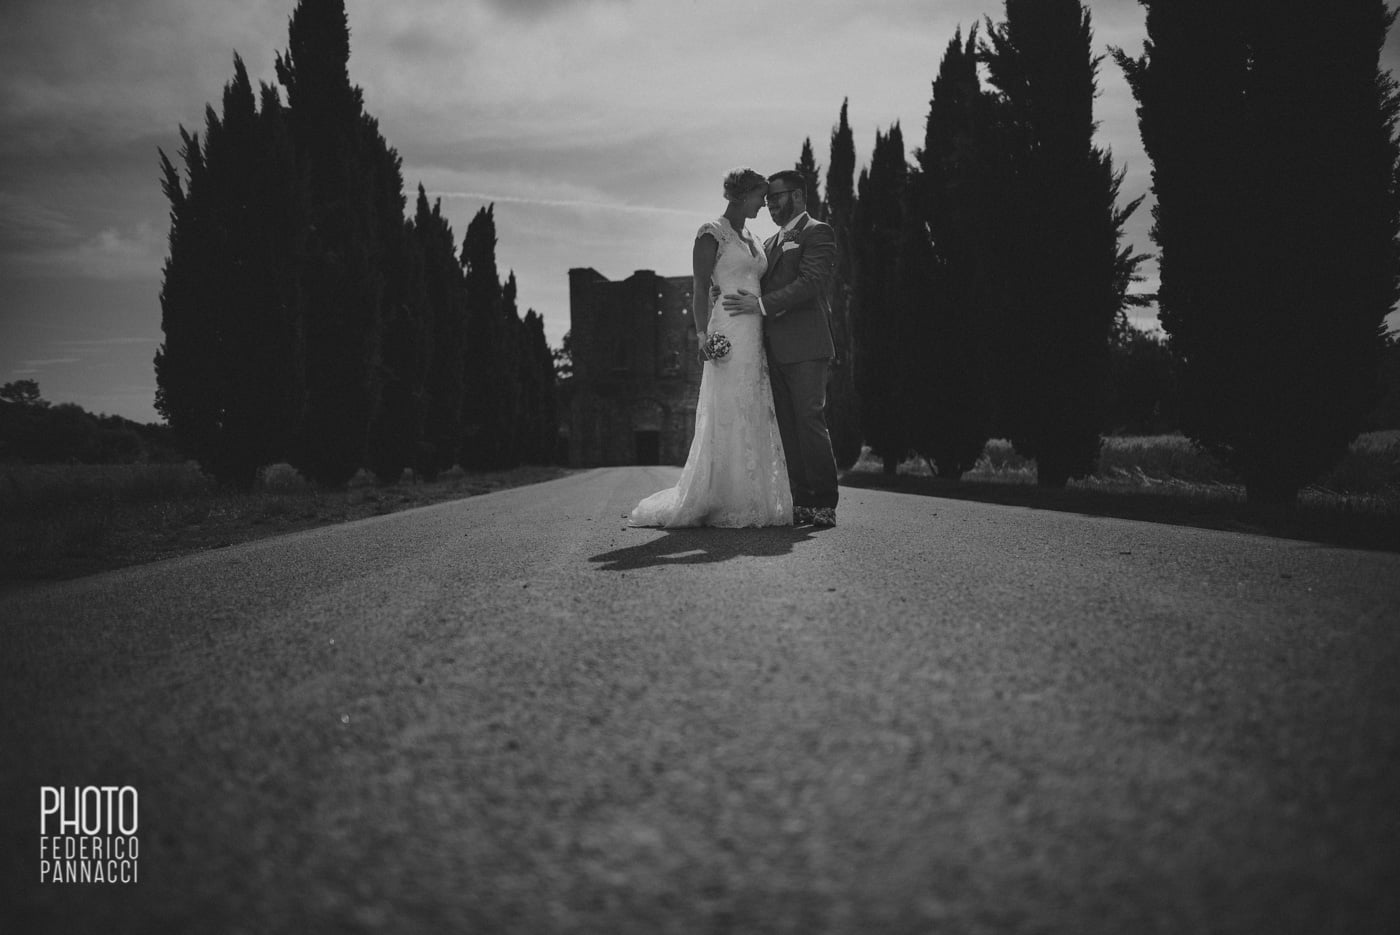 038-DestinationWedding-Sangalgano